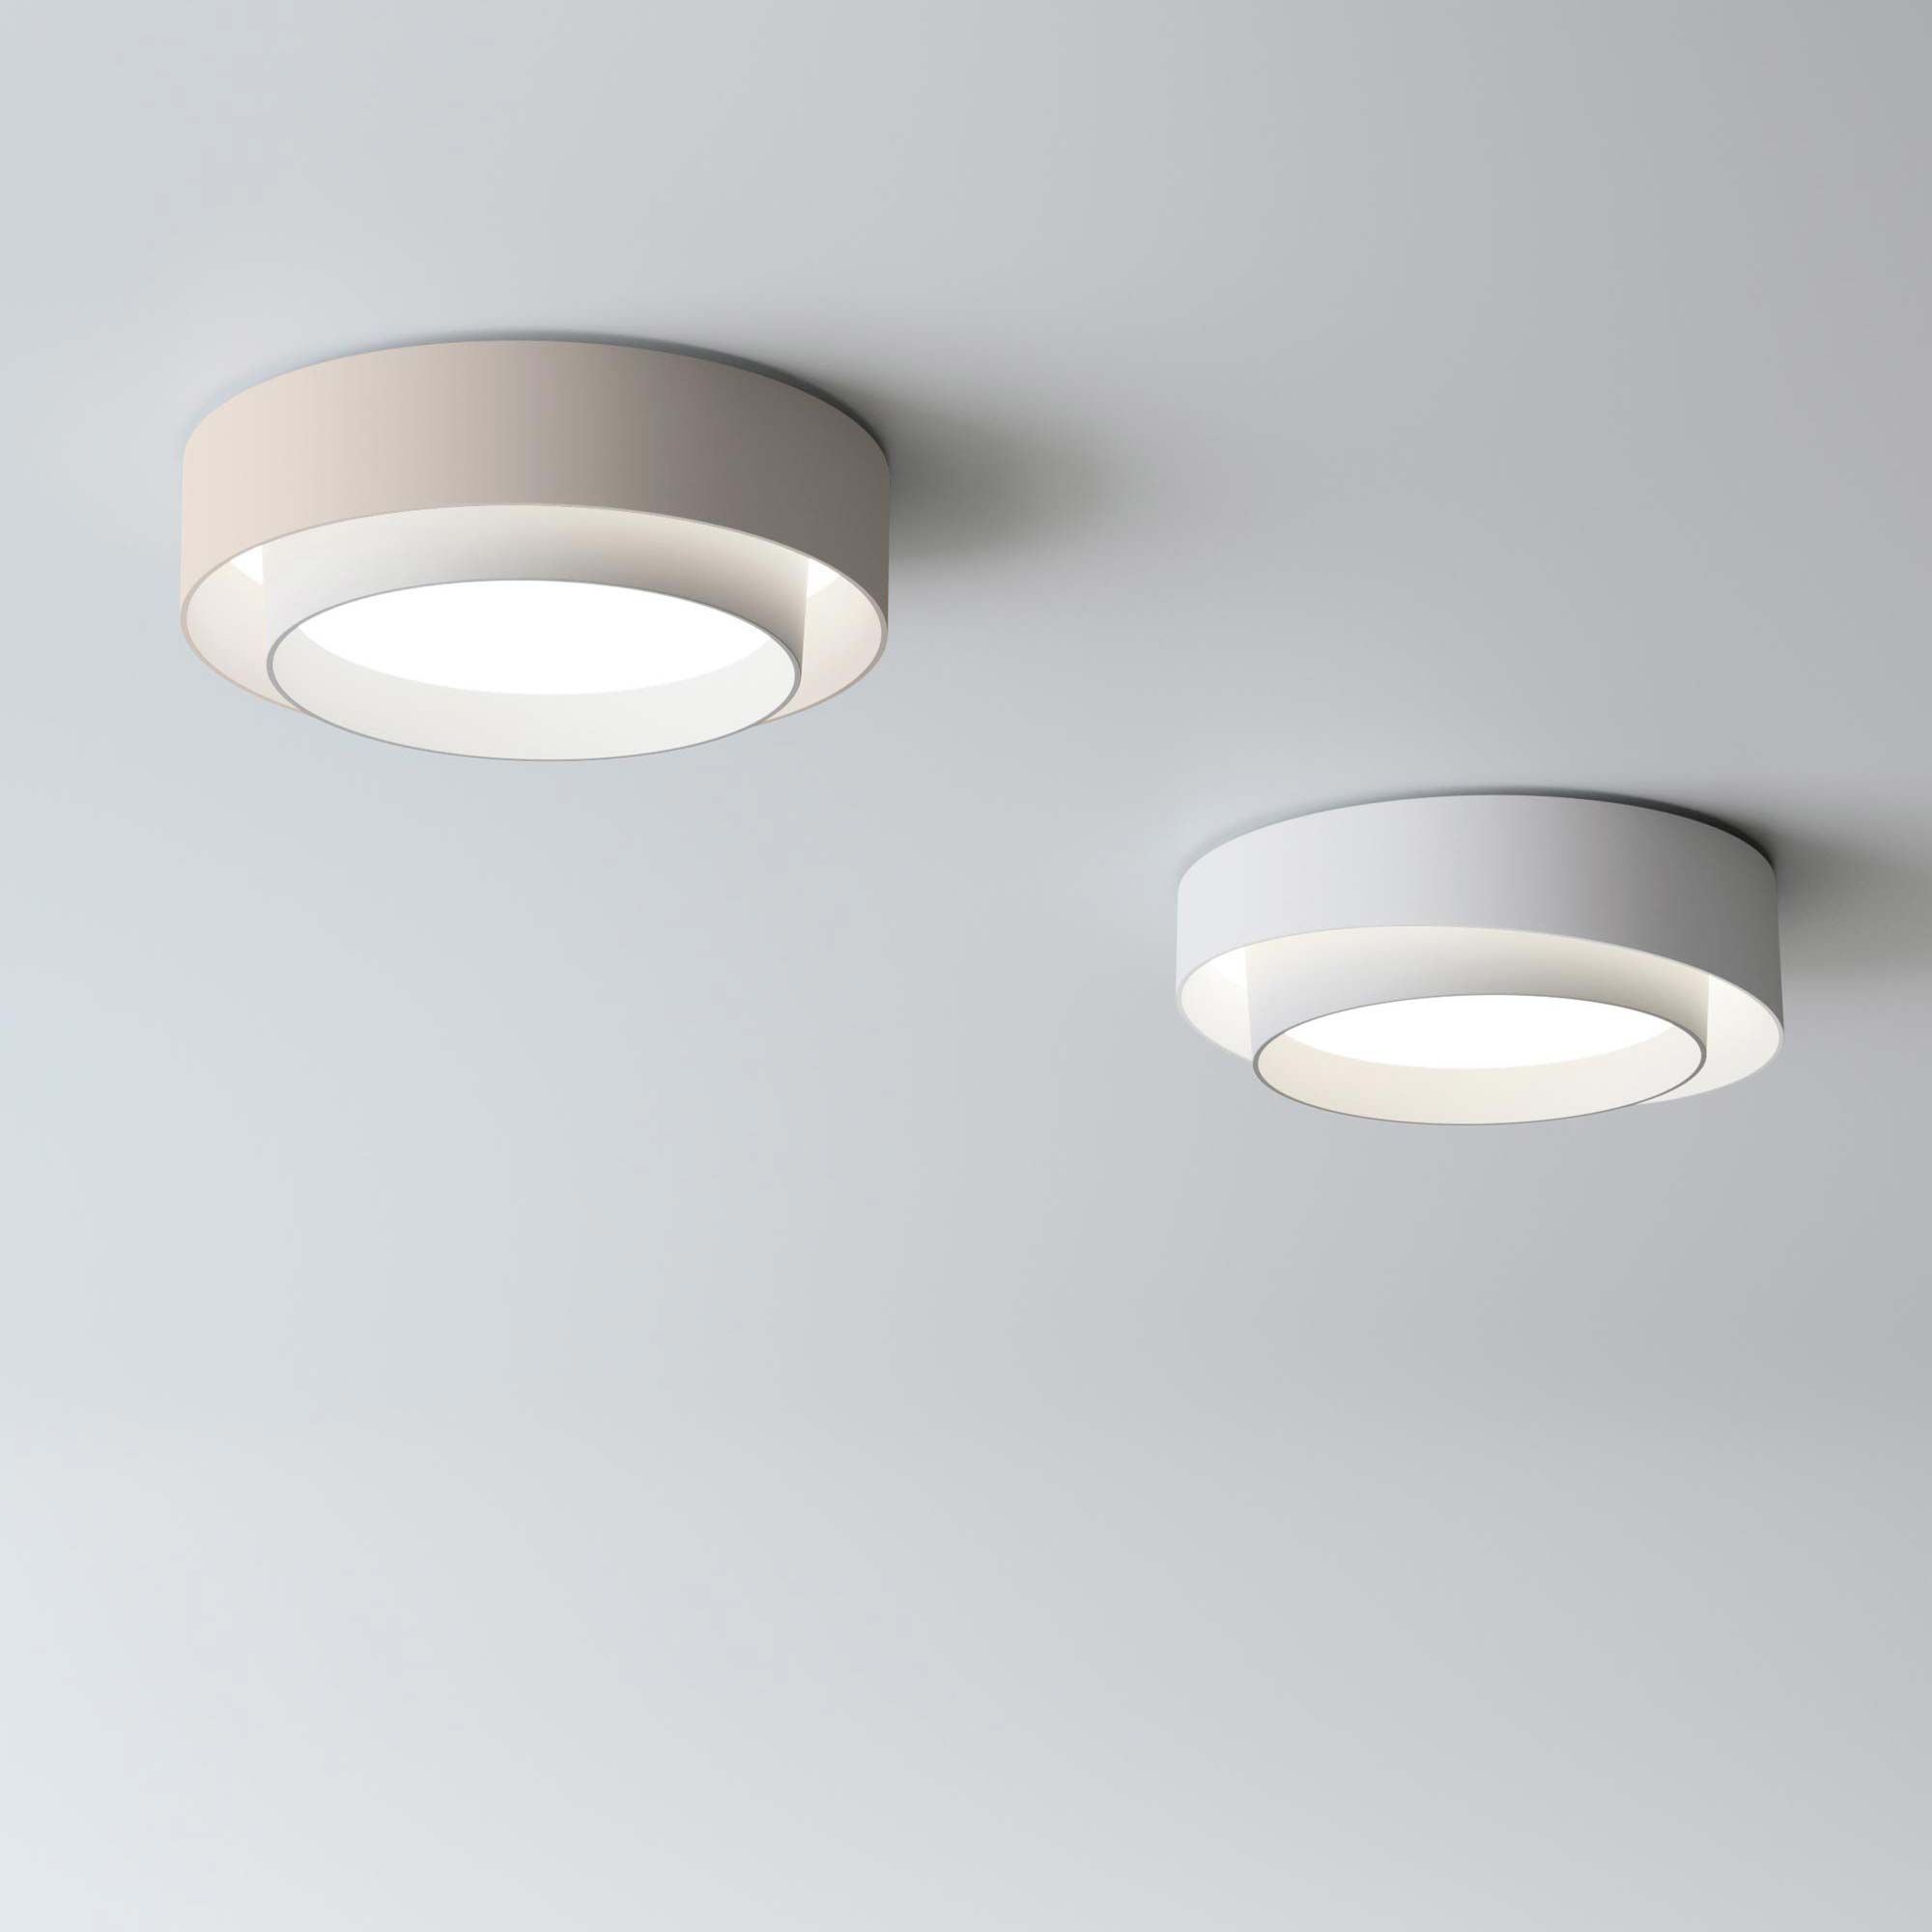 Vibia Centric ceiling lamp - available at Koda. | Ceiling ...